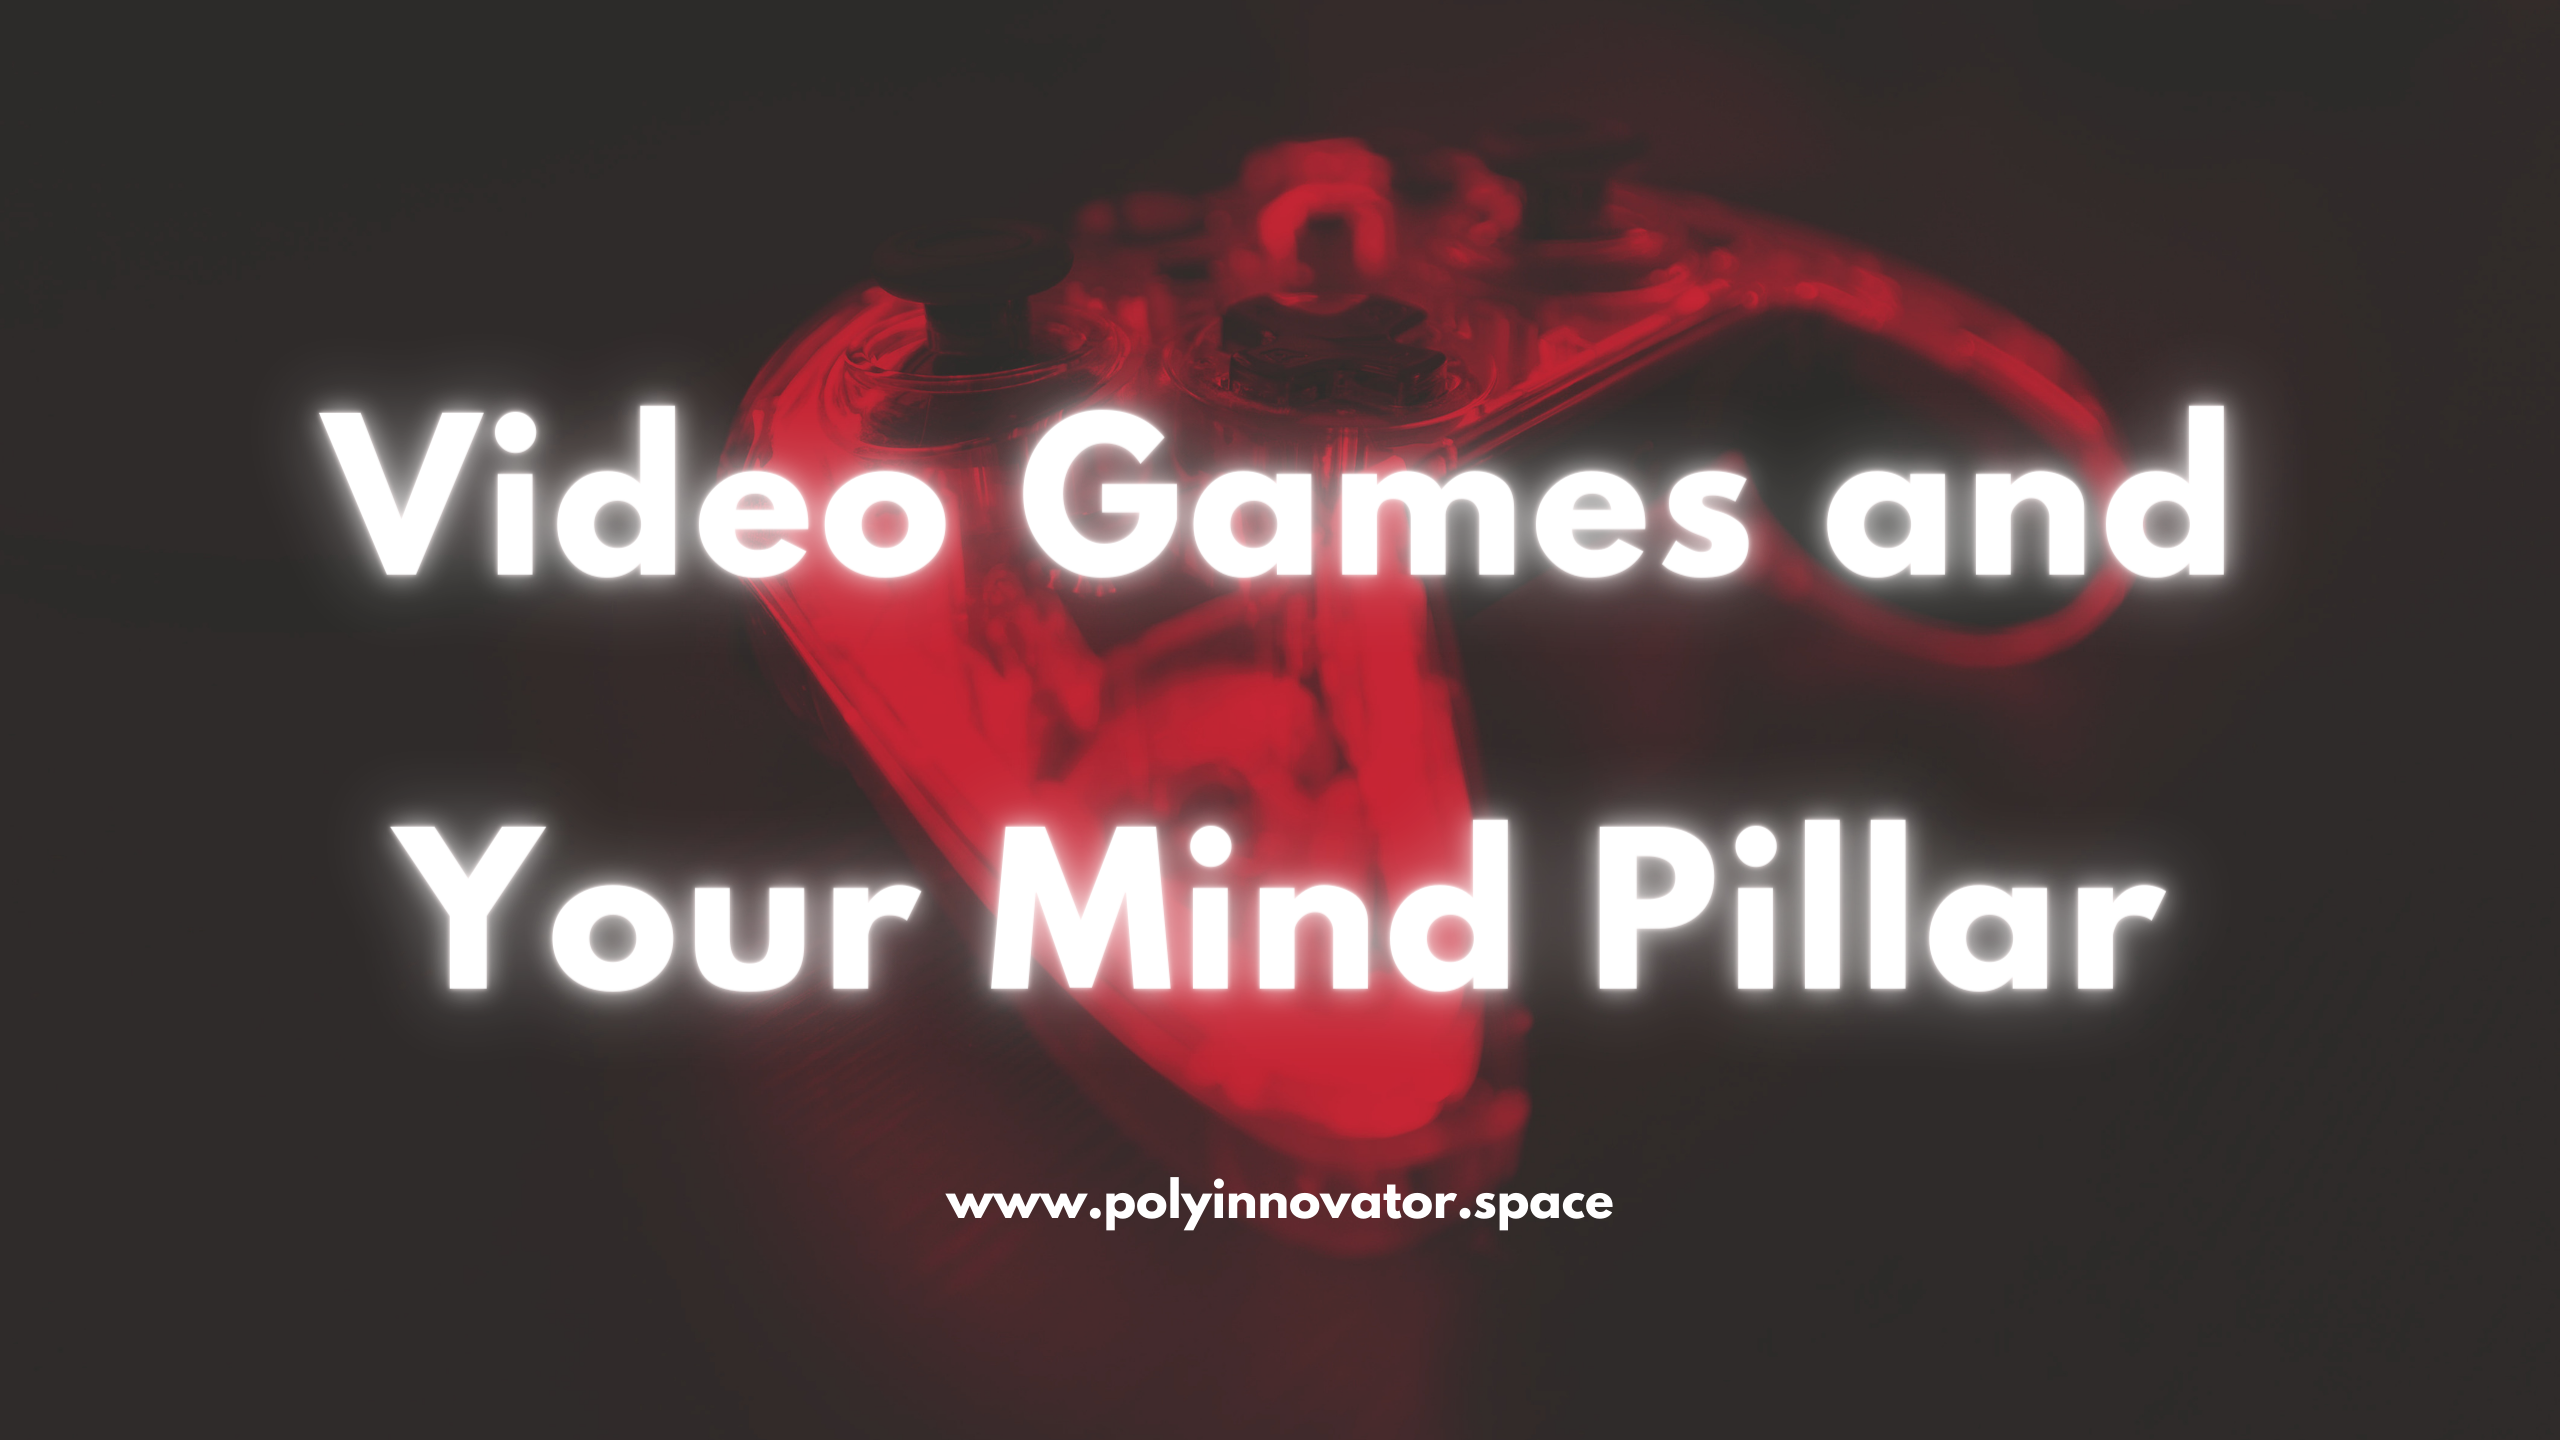 Video Games and Your Mind Pillar